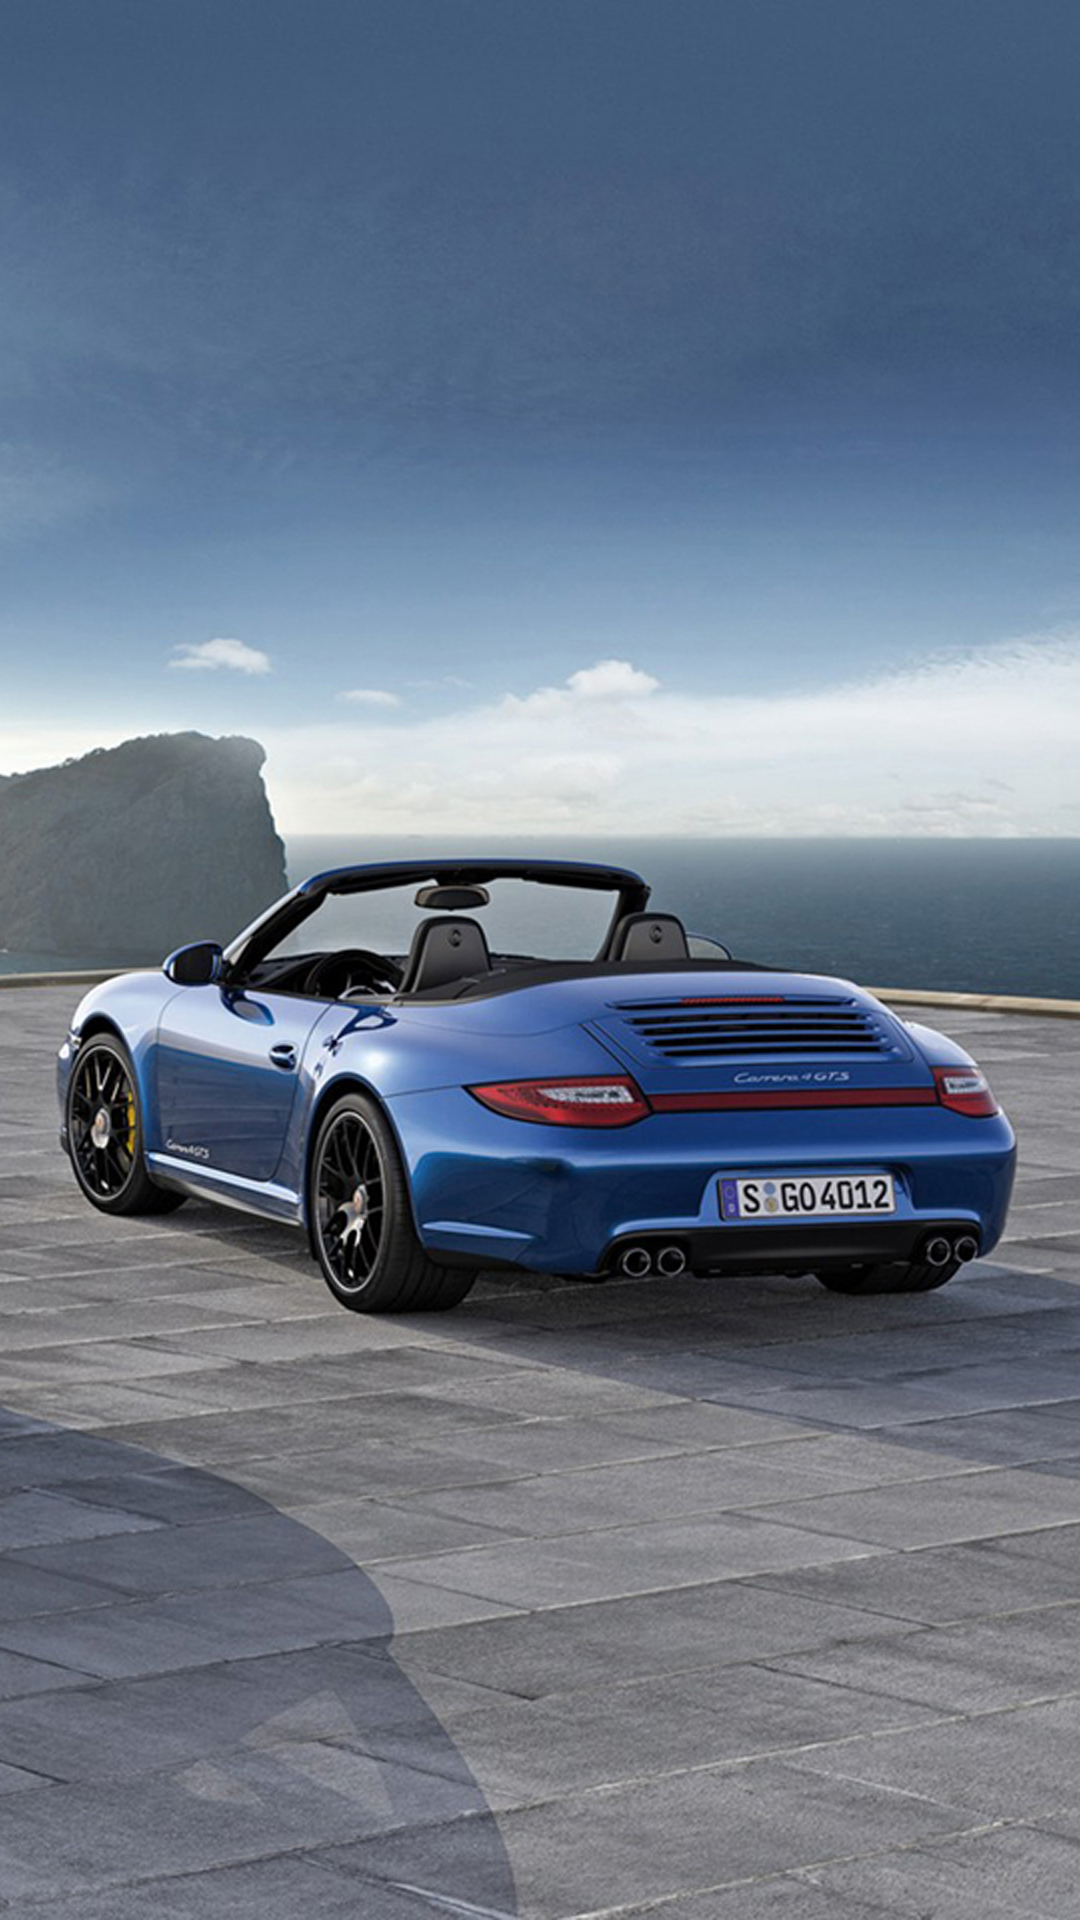 Free Download Sports Car At The Beach Iphone 6 Plus Wallpaper